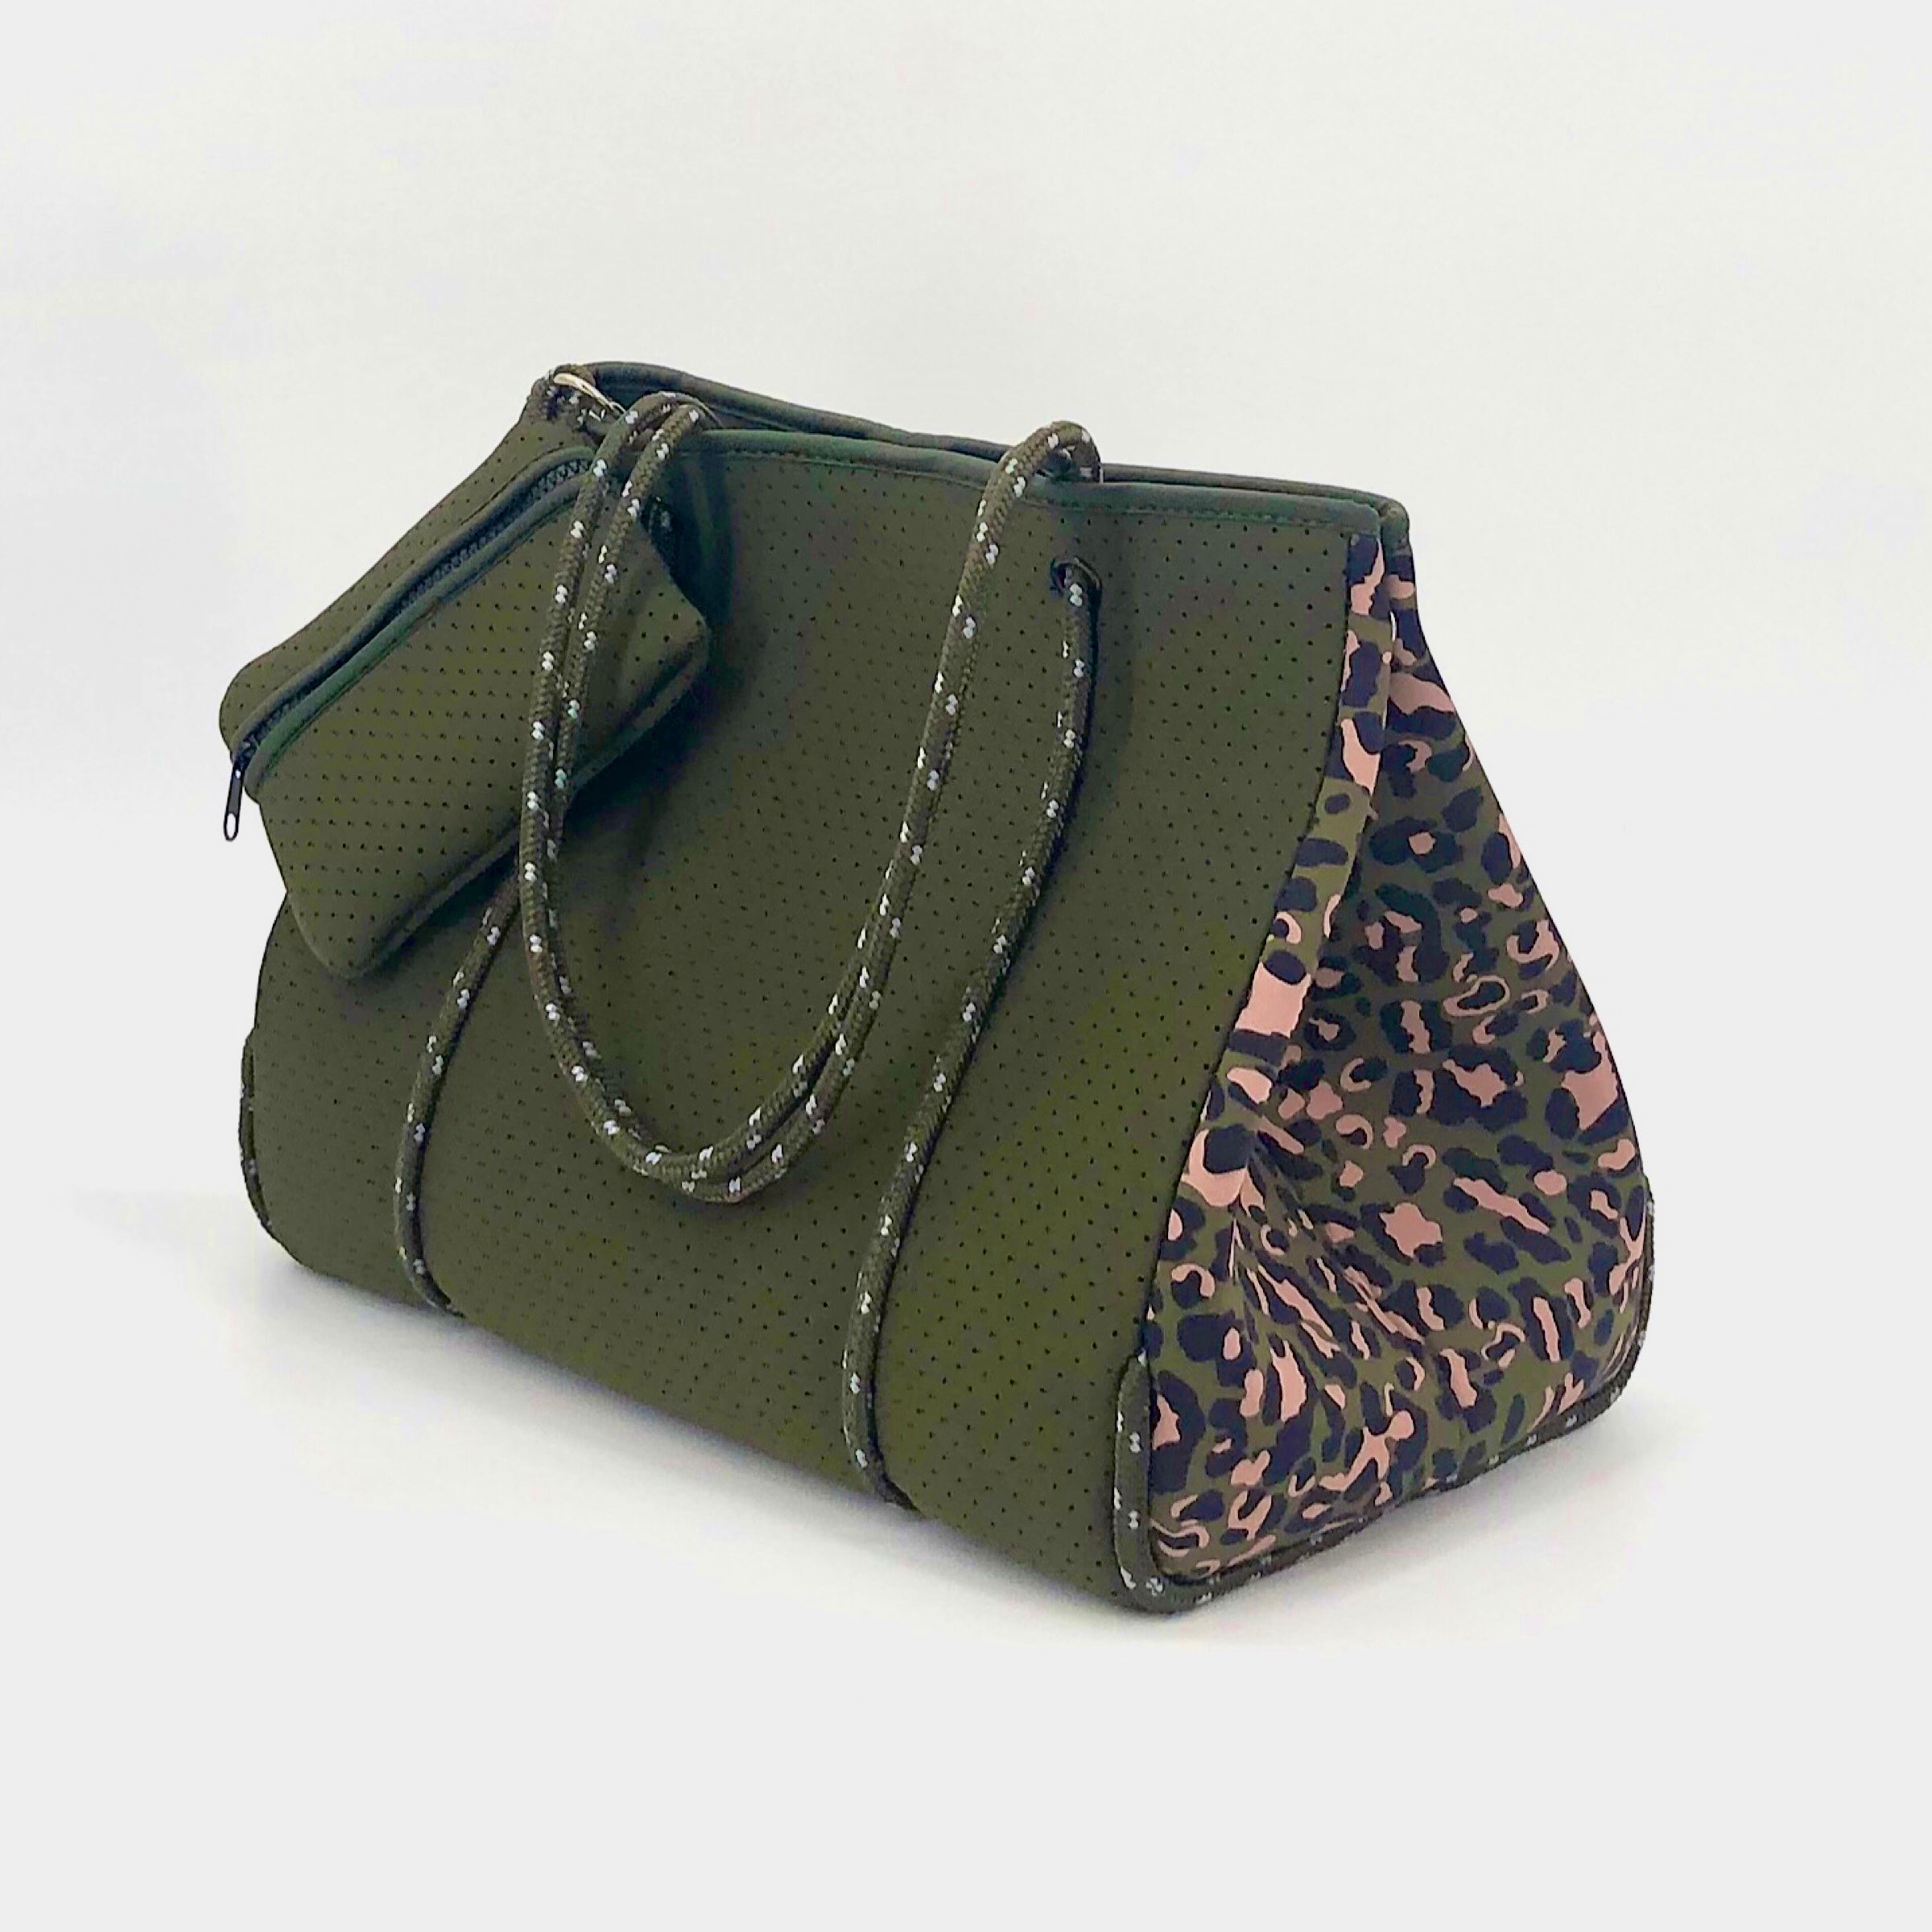 The Neoprene Tote in Army and Leopard